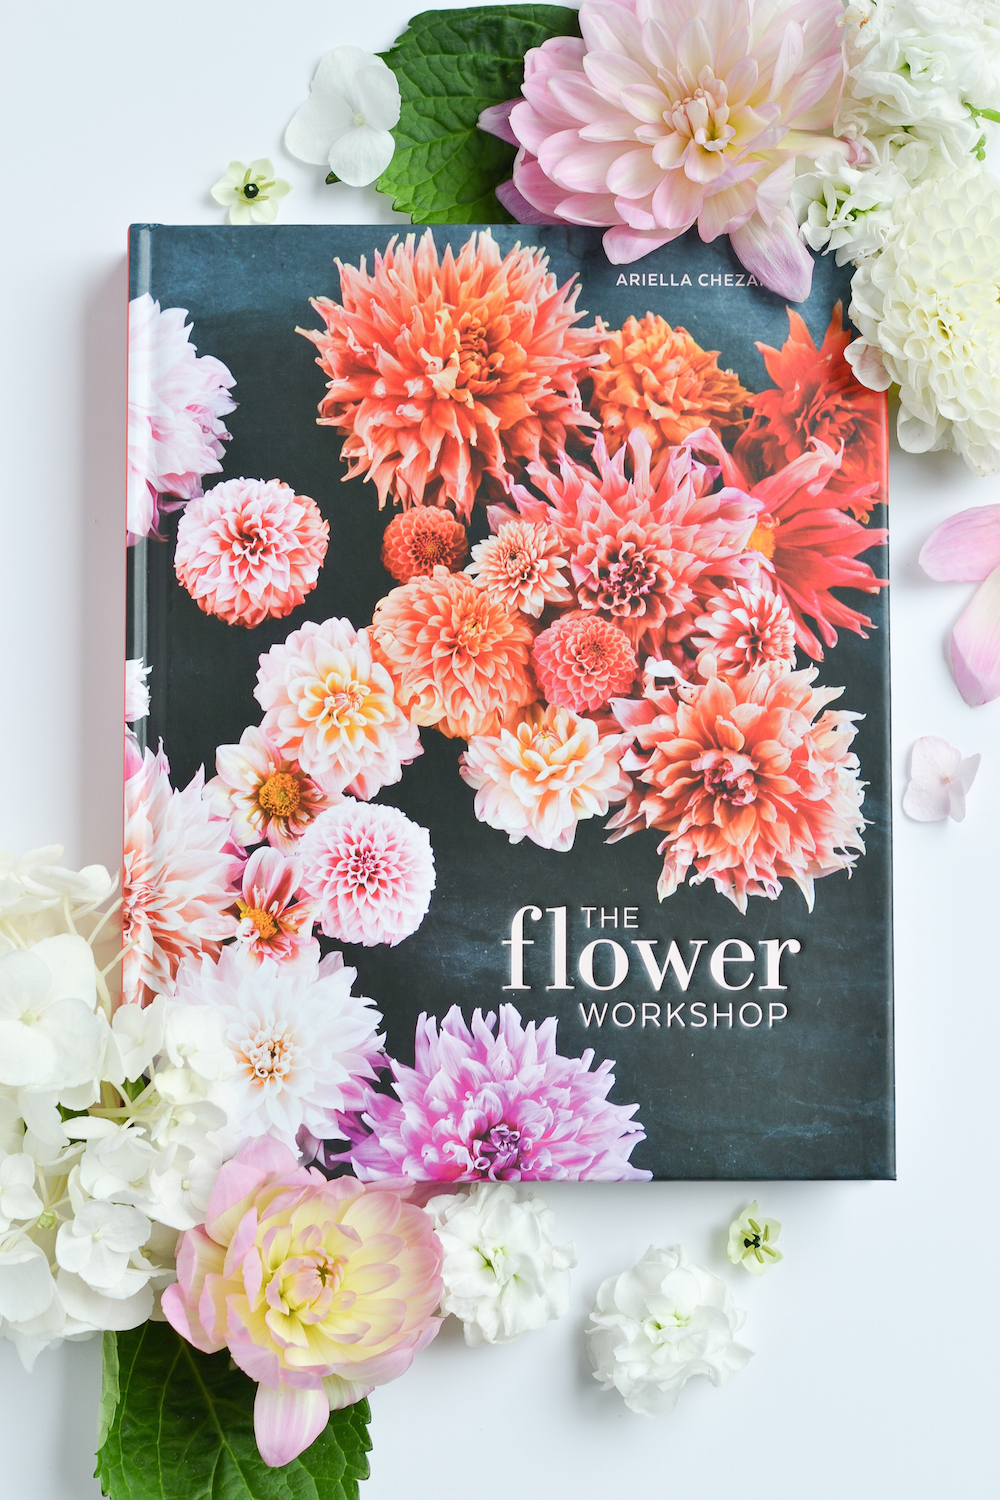 The Flower Workshop Florals Book Reading Monika Hibbs